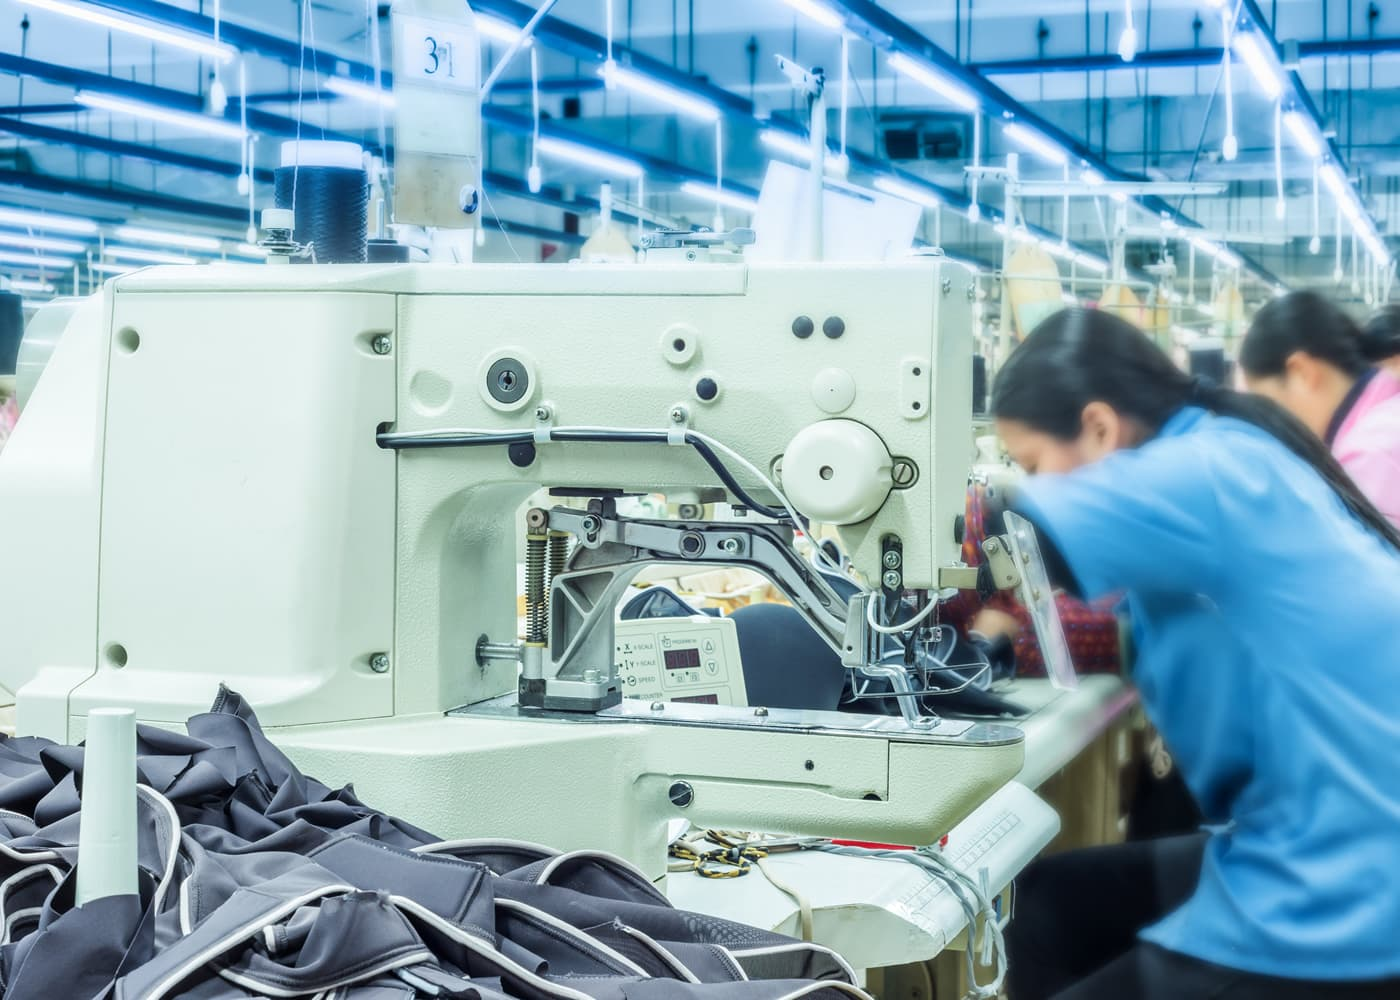 Uncovering Forced Labor in the Supply Chain